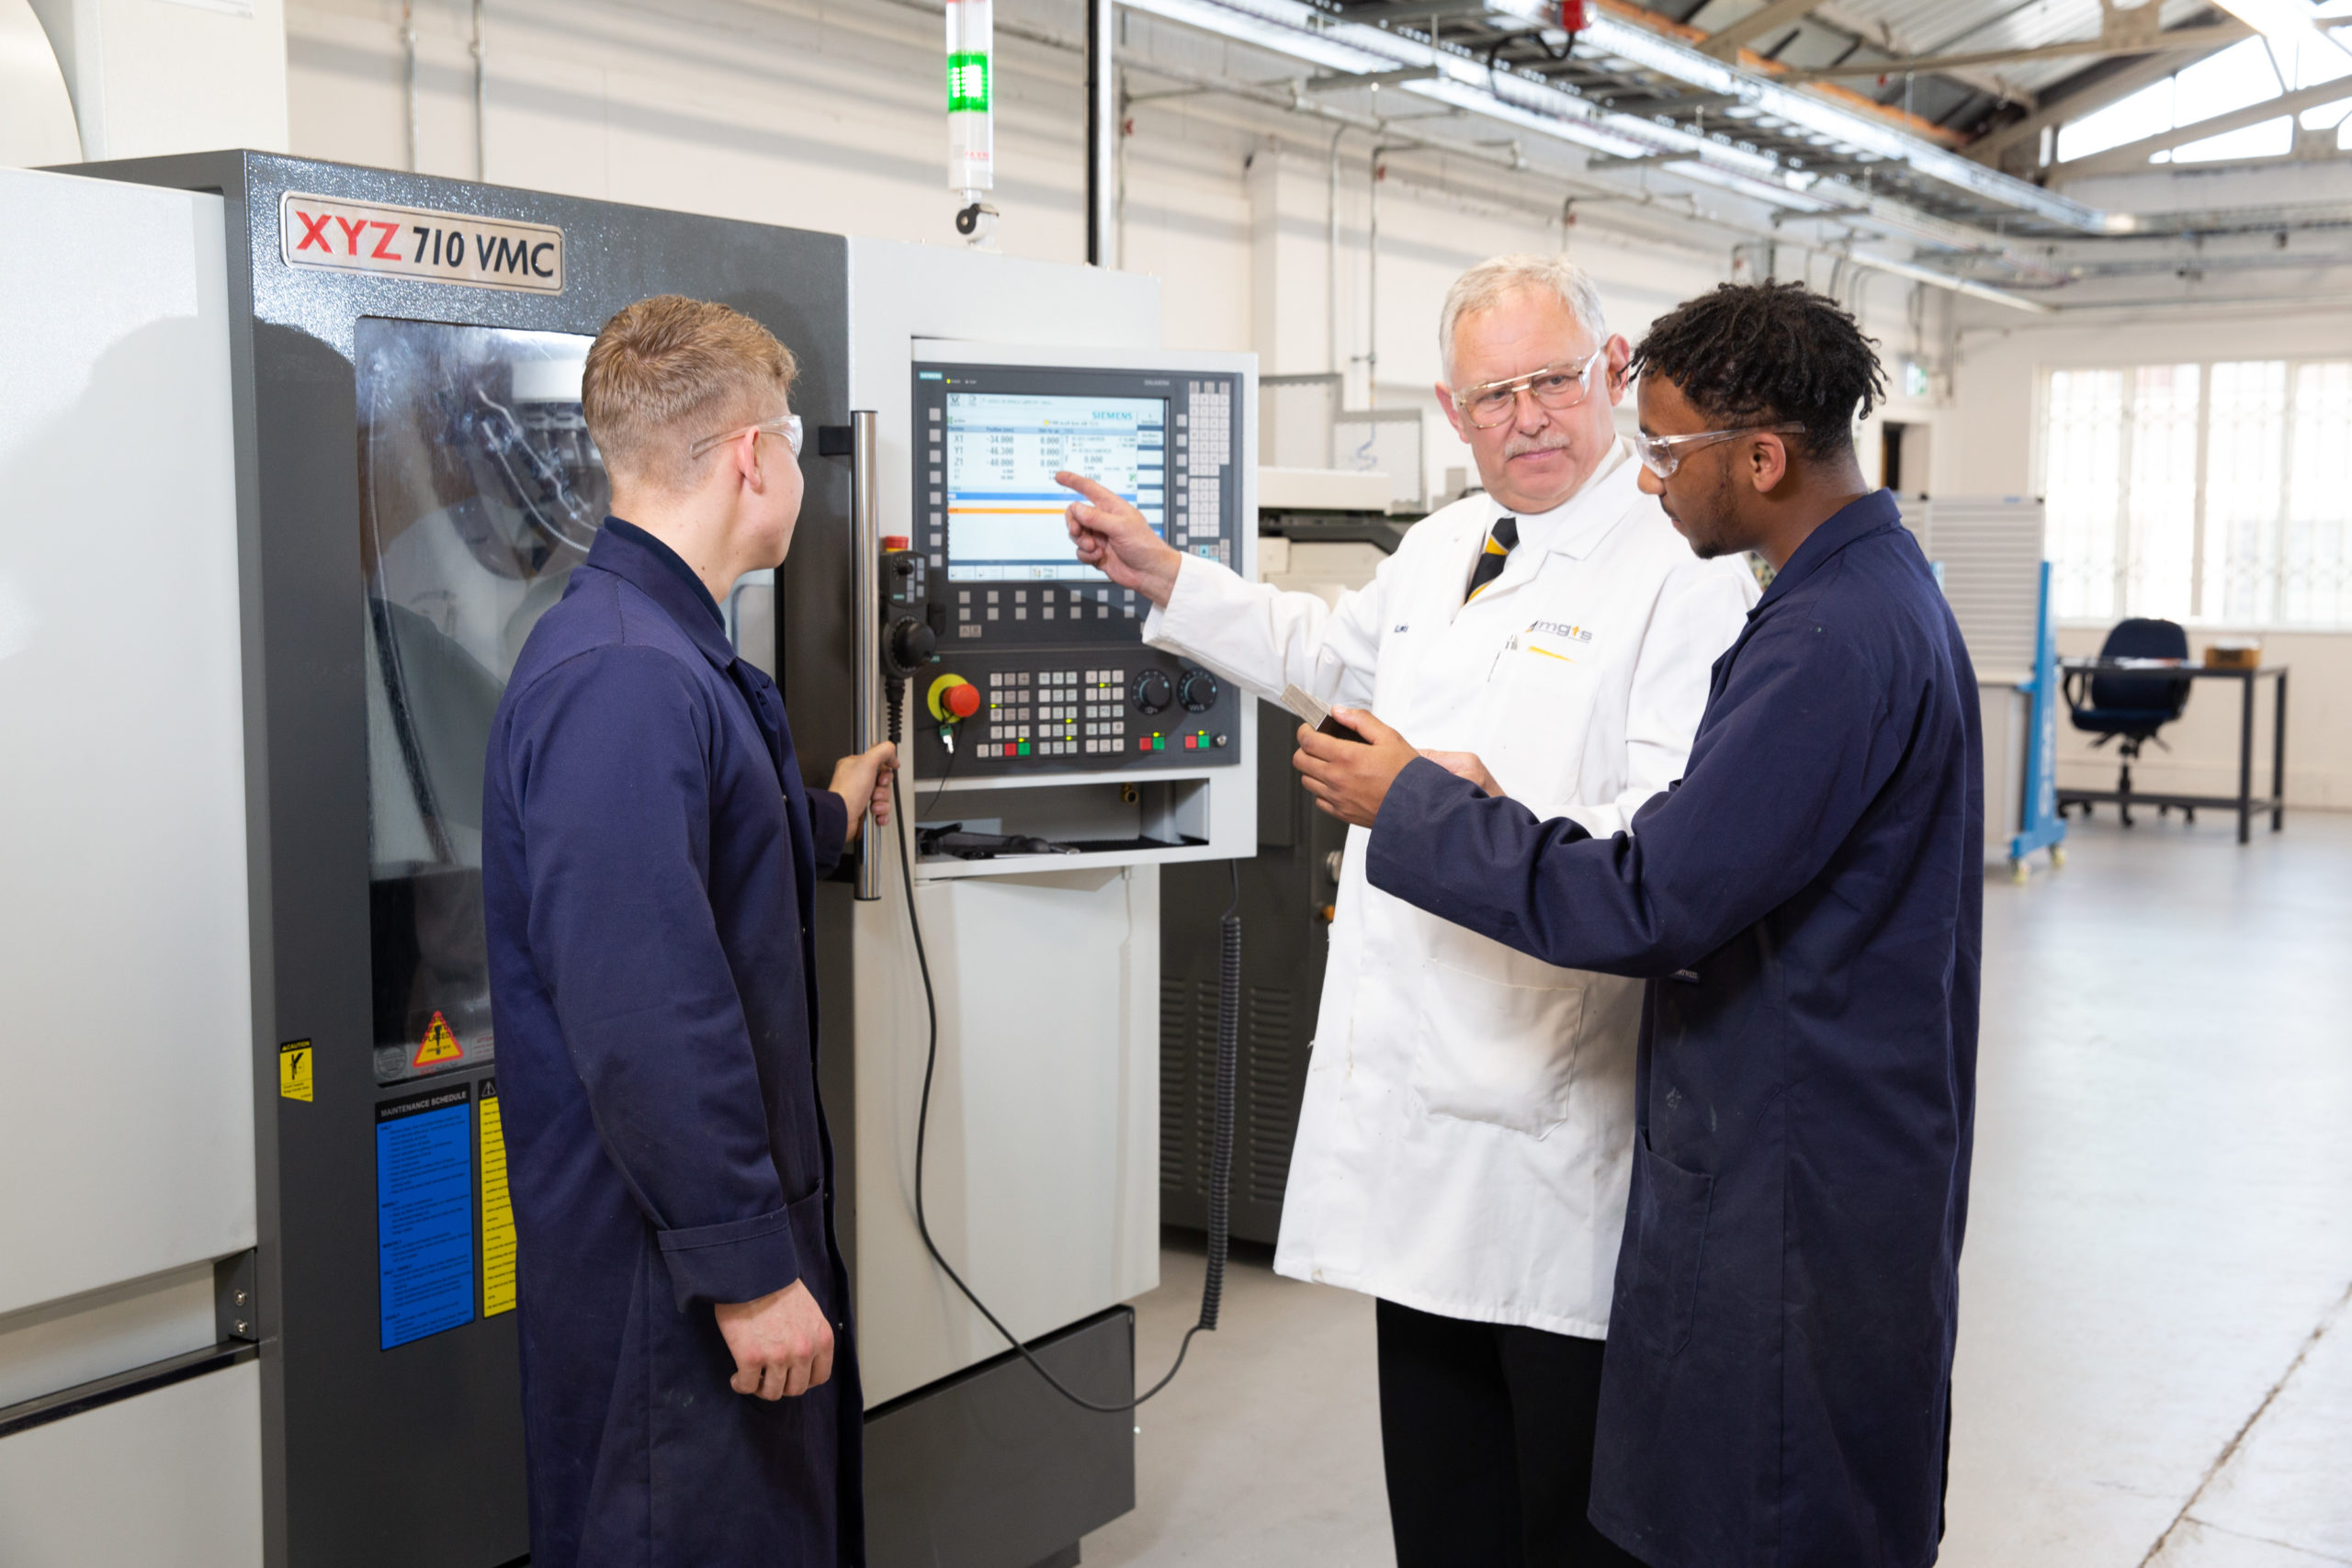 Teacher showing two engineering apprentices how to use machinery